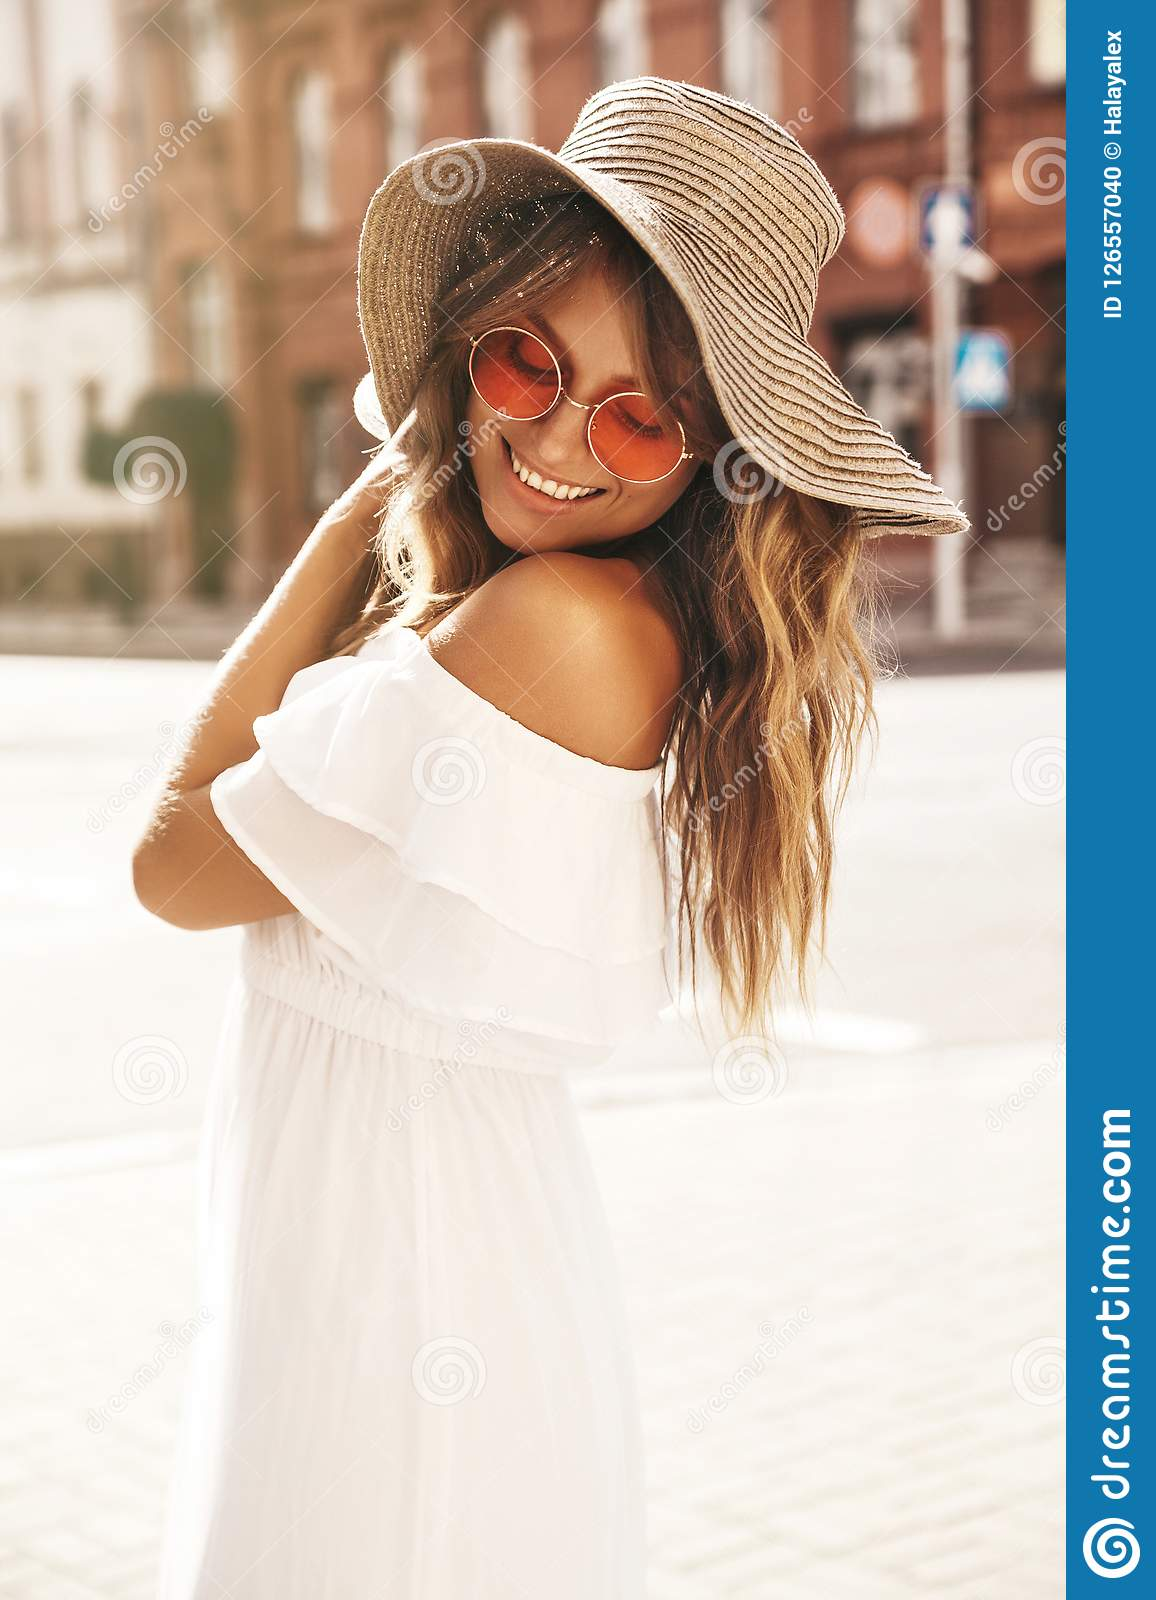 55a39a27c Portrait of beautiful smiling cute blond teenager model with no makeup in  summer hipster white dress and big beach hat posing on the street background